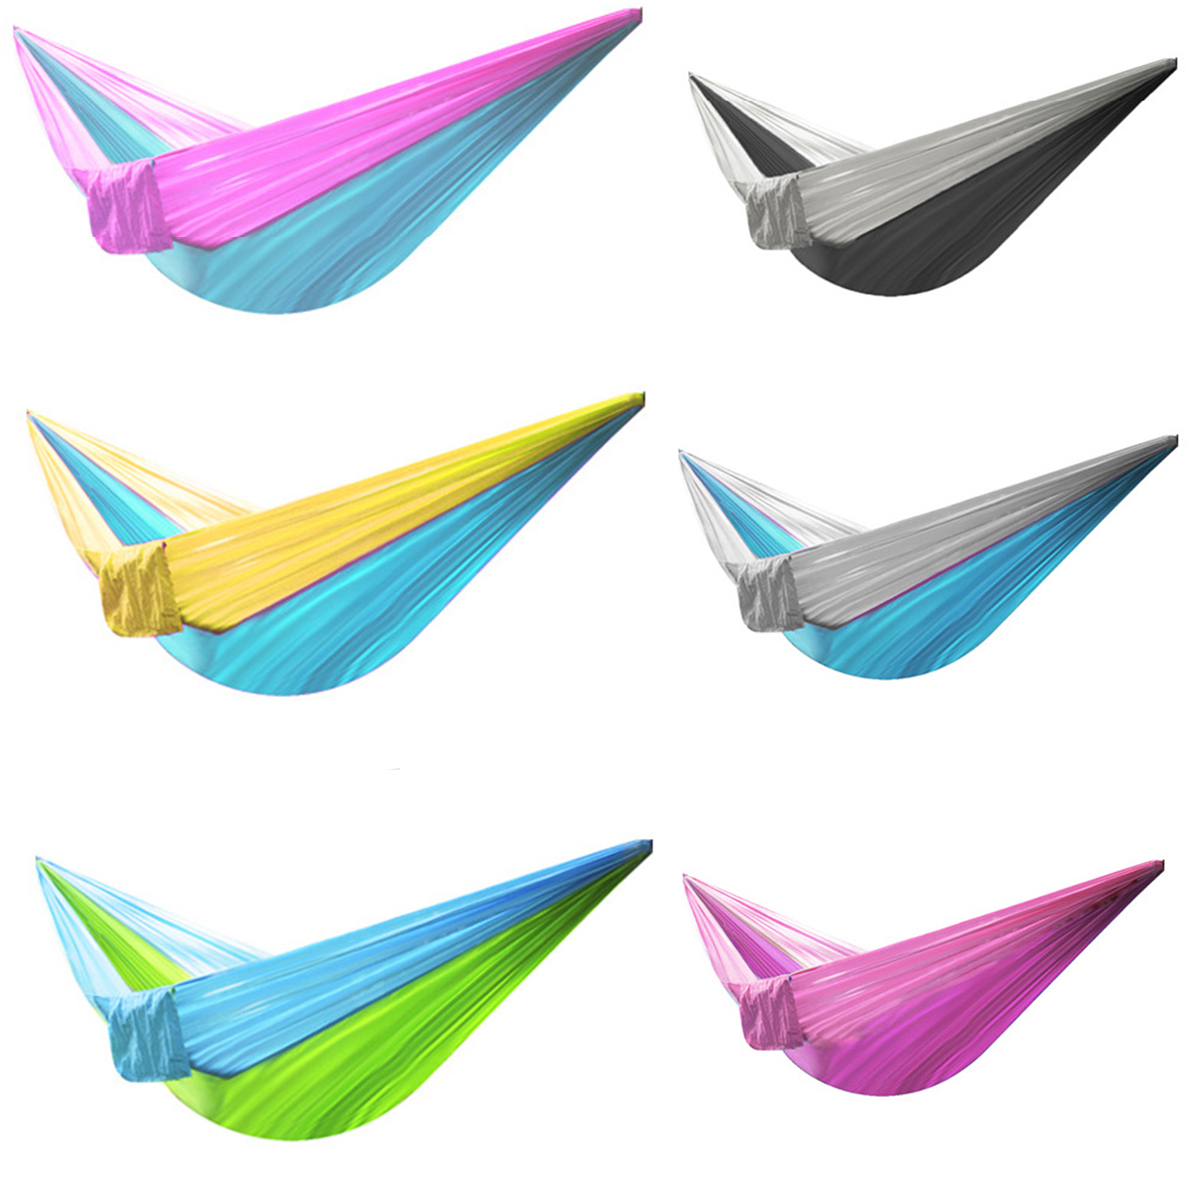 Portable Hammock Double Person Camping Survival Garden Hunting Leisure Travel Furniture Parachute Hammocks 20cm X 12cm X 10cm Sports & Entertainment